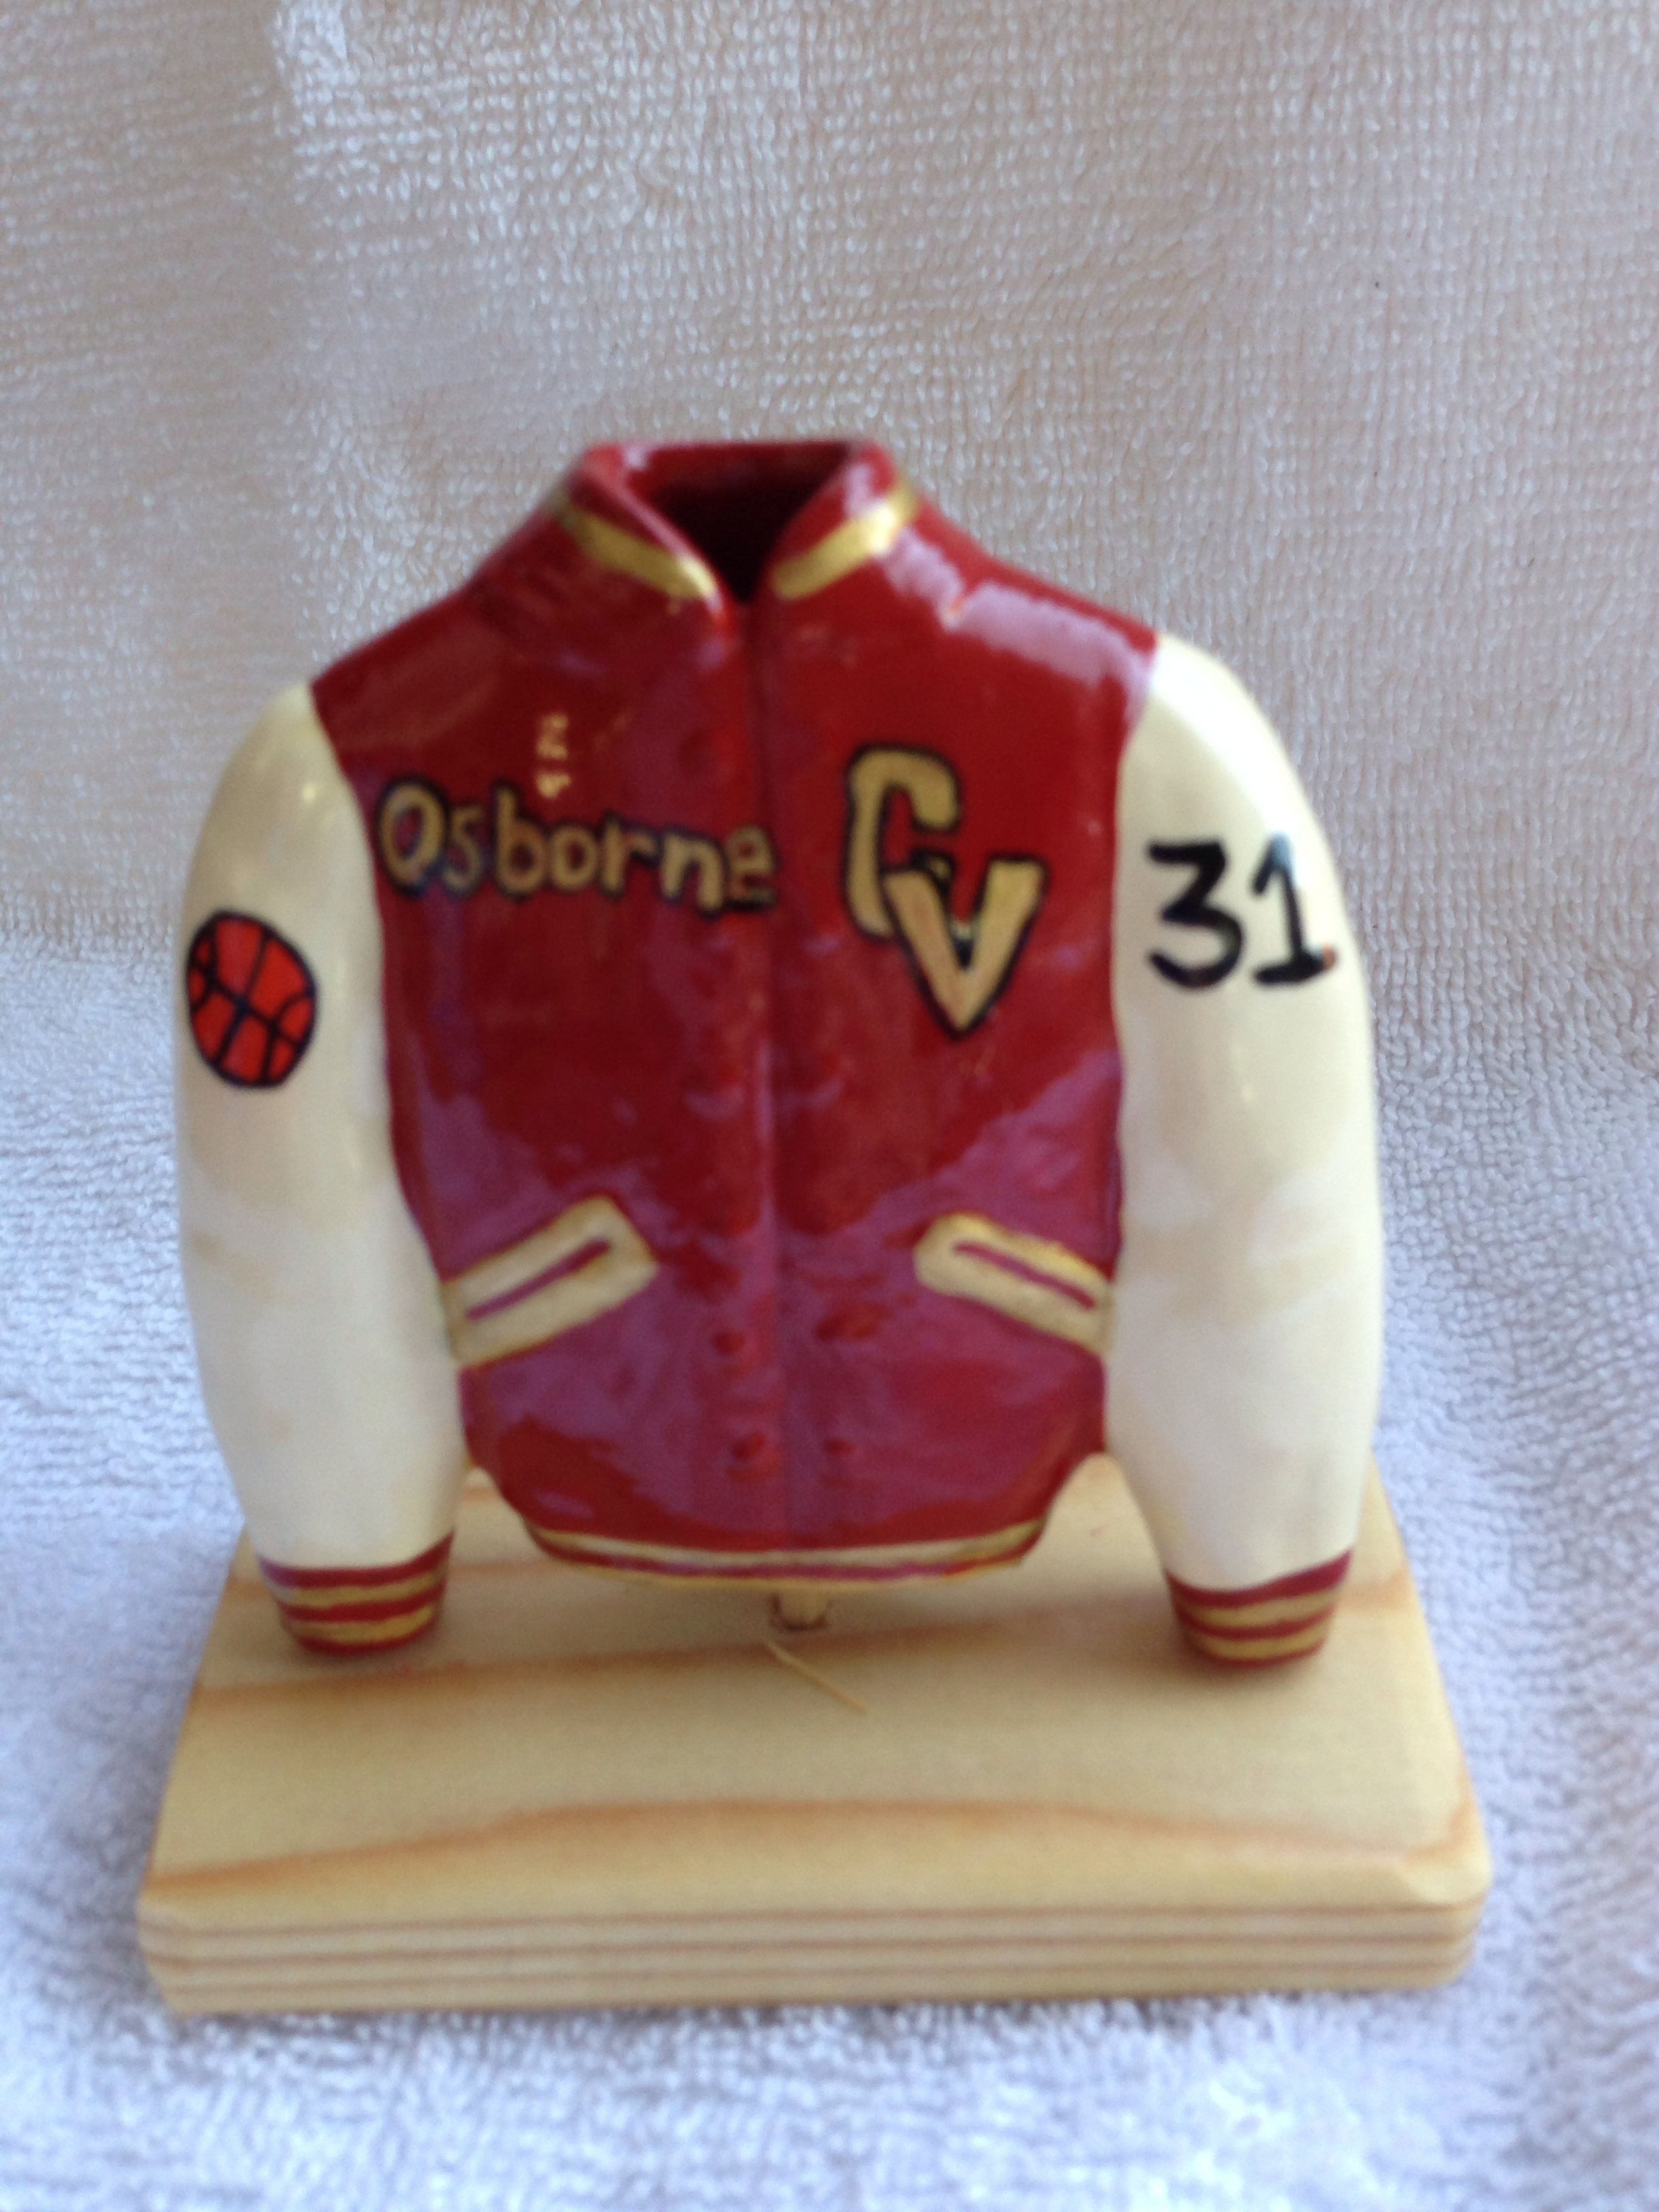 My husband & I make customized hand painted letterman jackets for sports teams, groups or businesses. Here is an order we did for a team in Corvallis